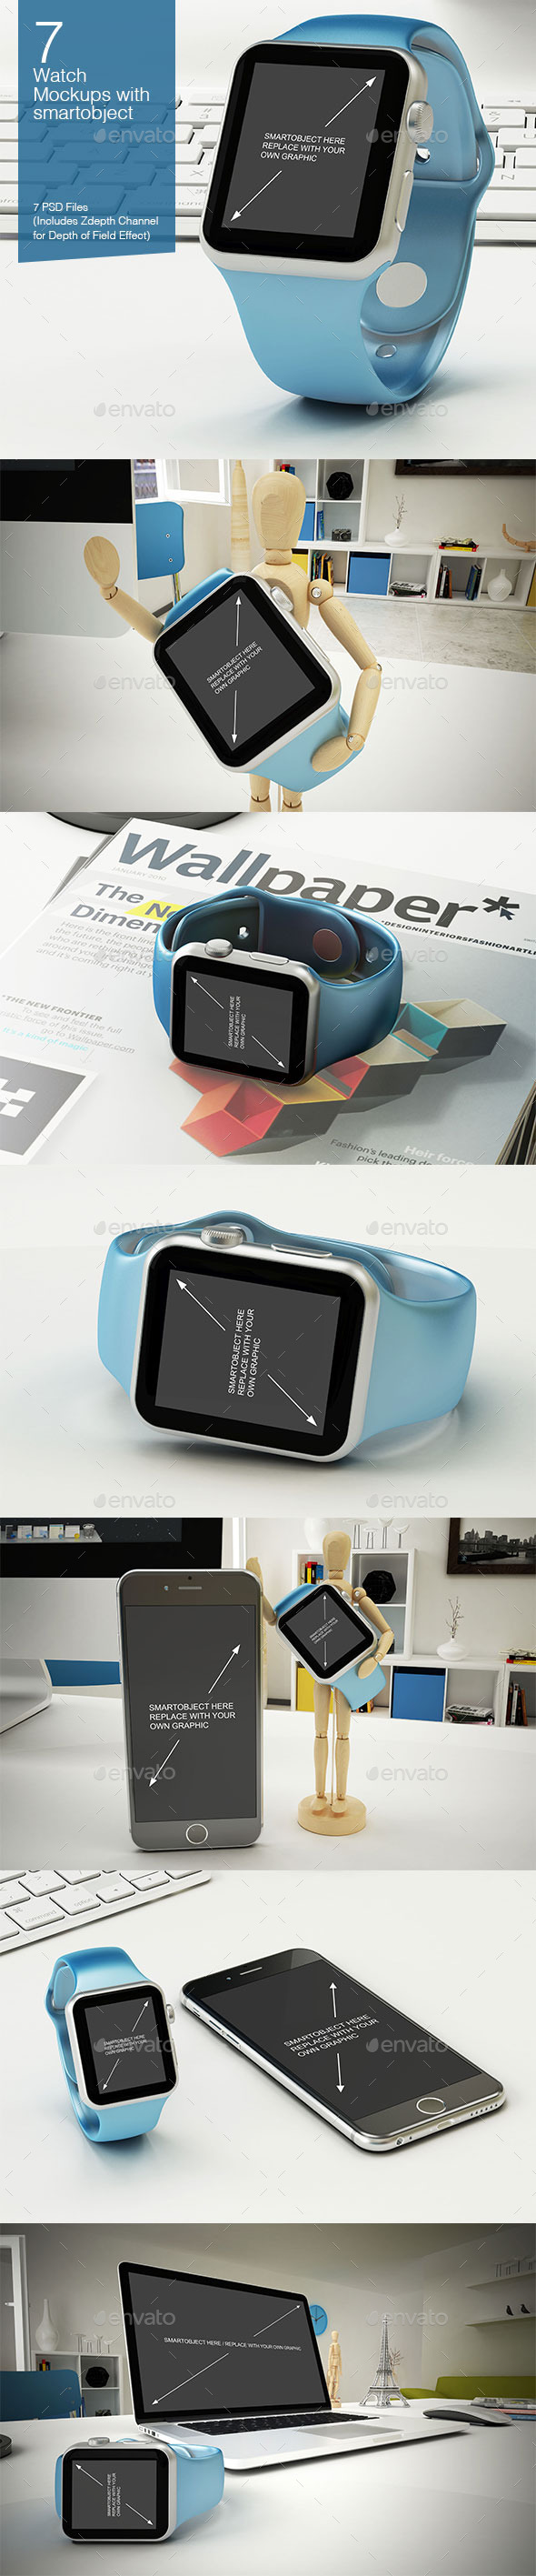 GraphicRiver Watch Mockup 7 Poses 9909622